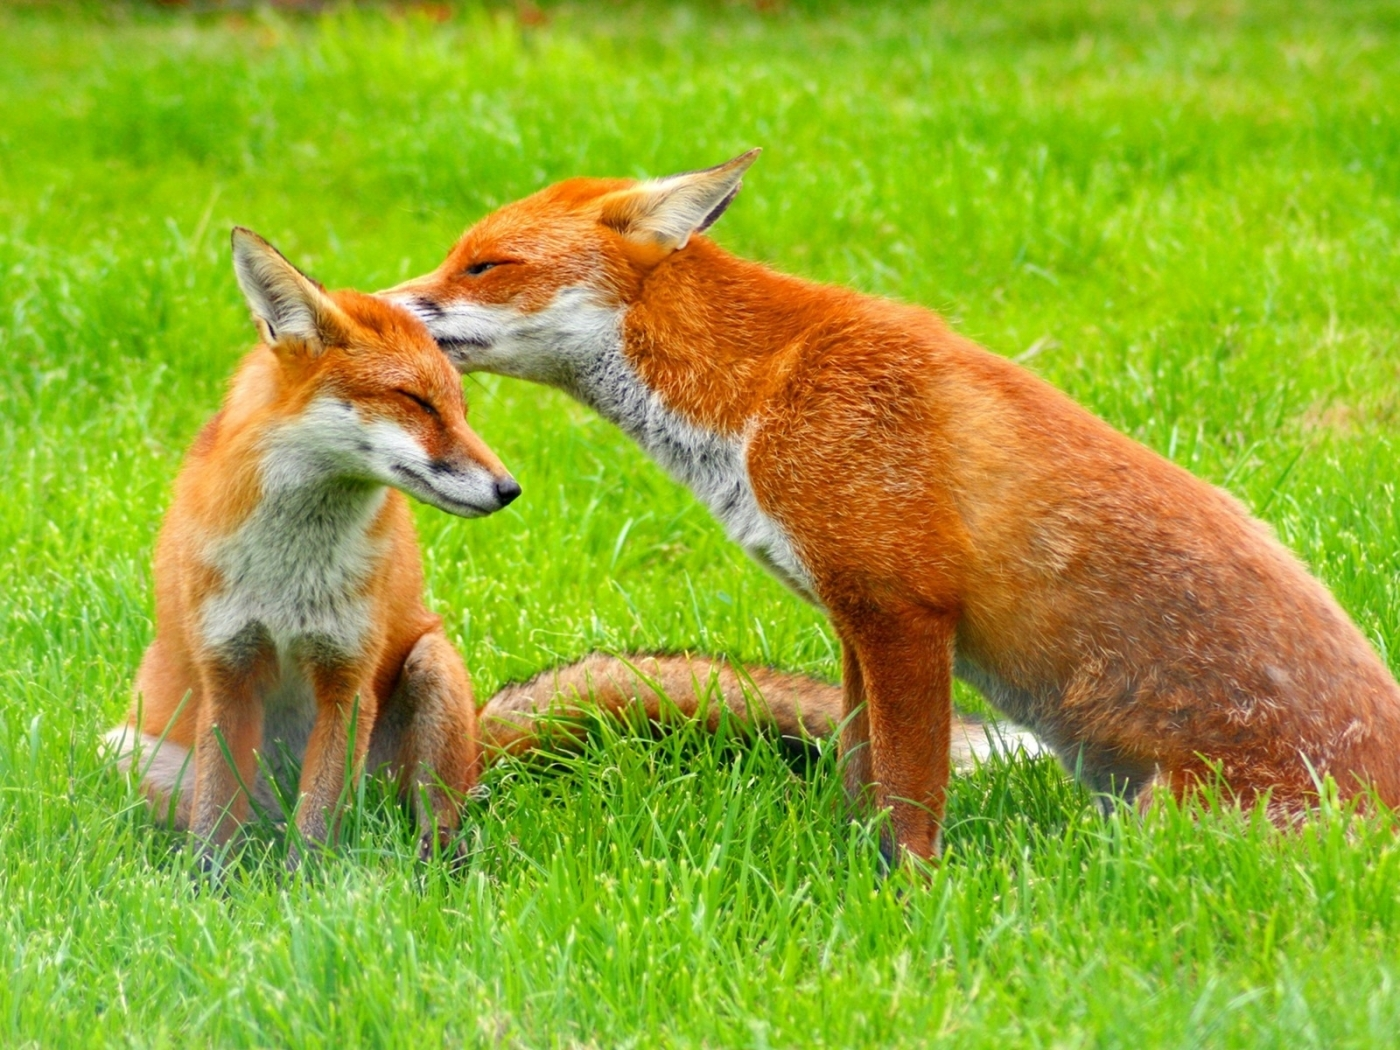 23734 download wallpaper Animals, Fox screensavers and pictures for free